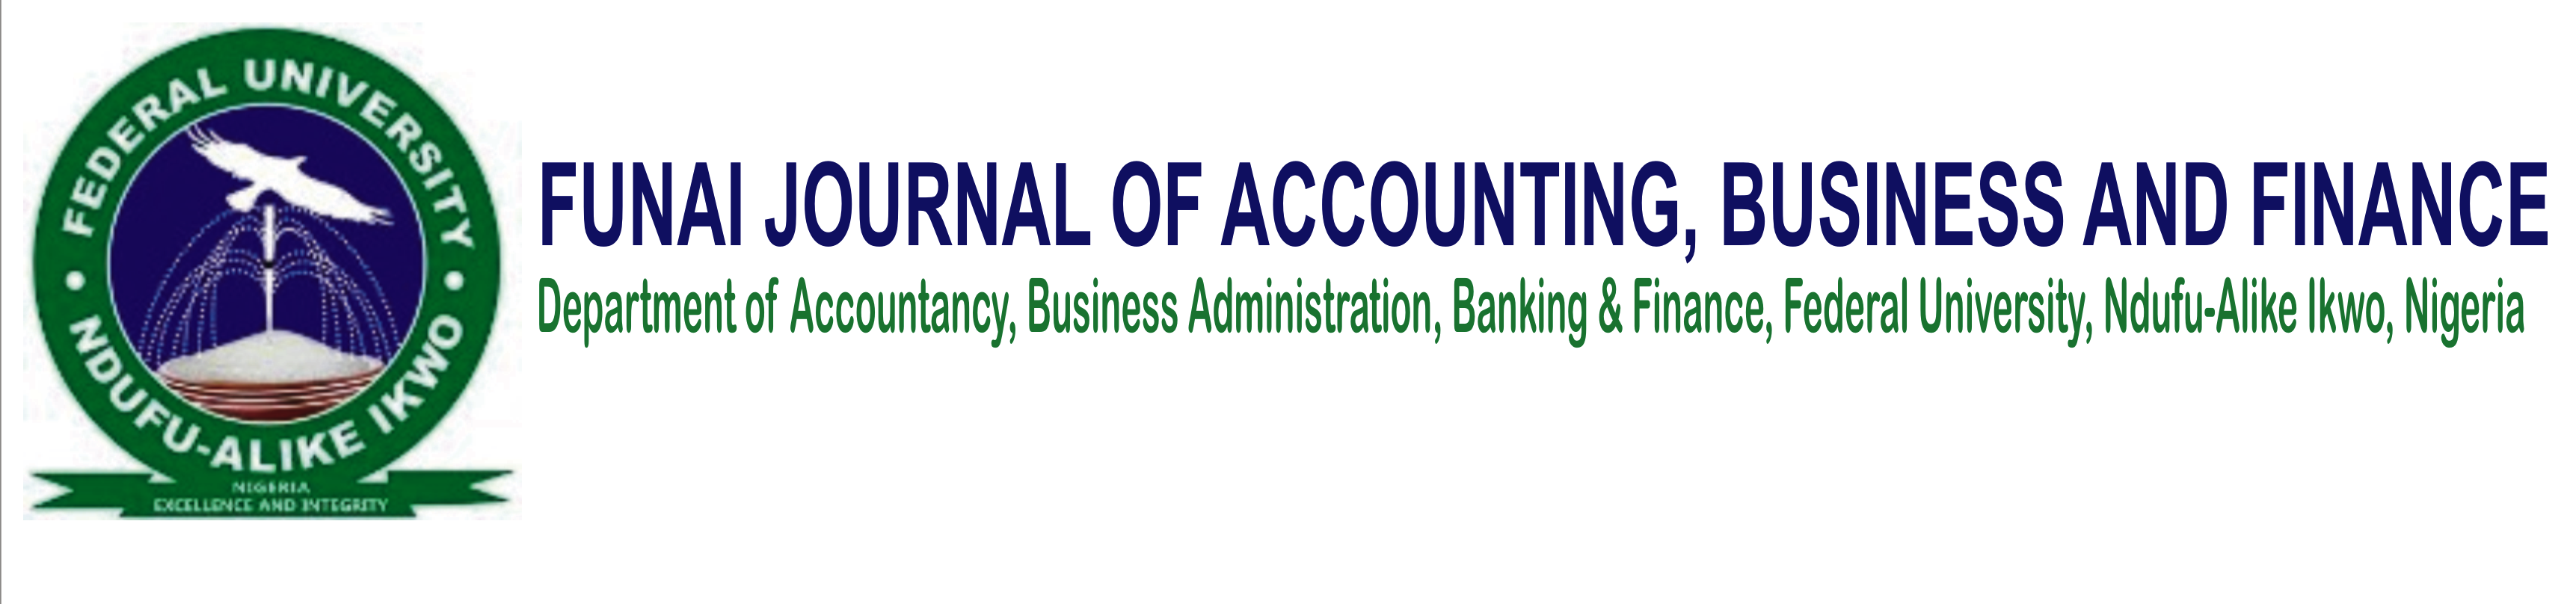 AE-Funai Journal of Accounting, Business and Finance (FUJABF)